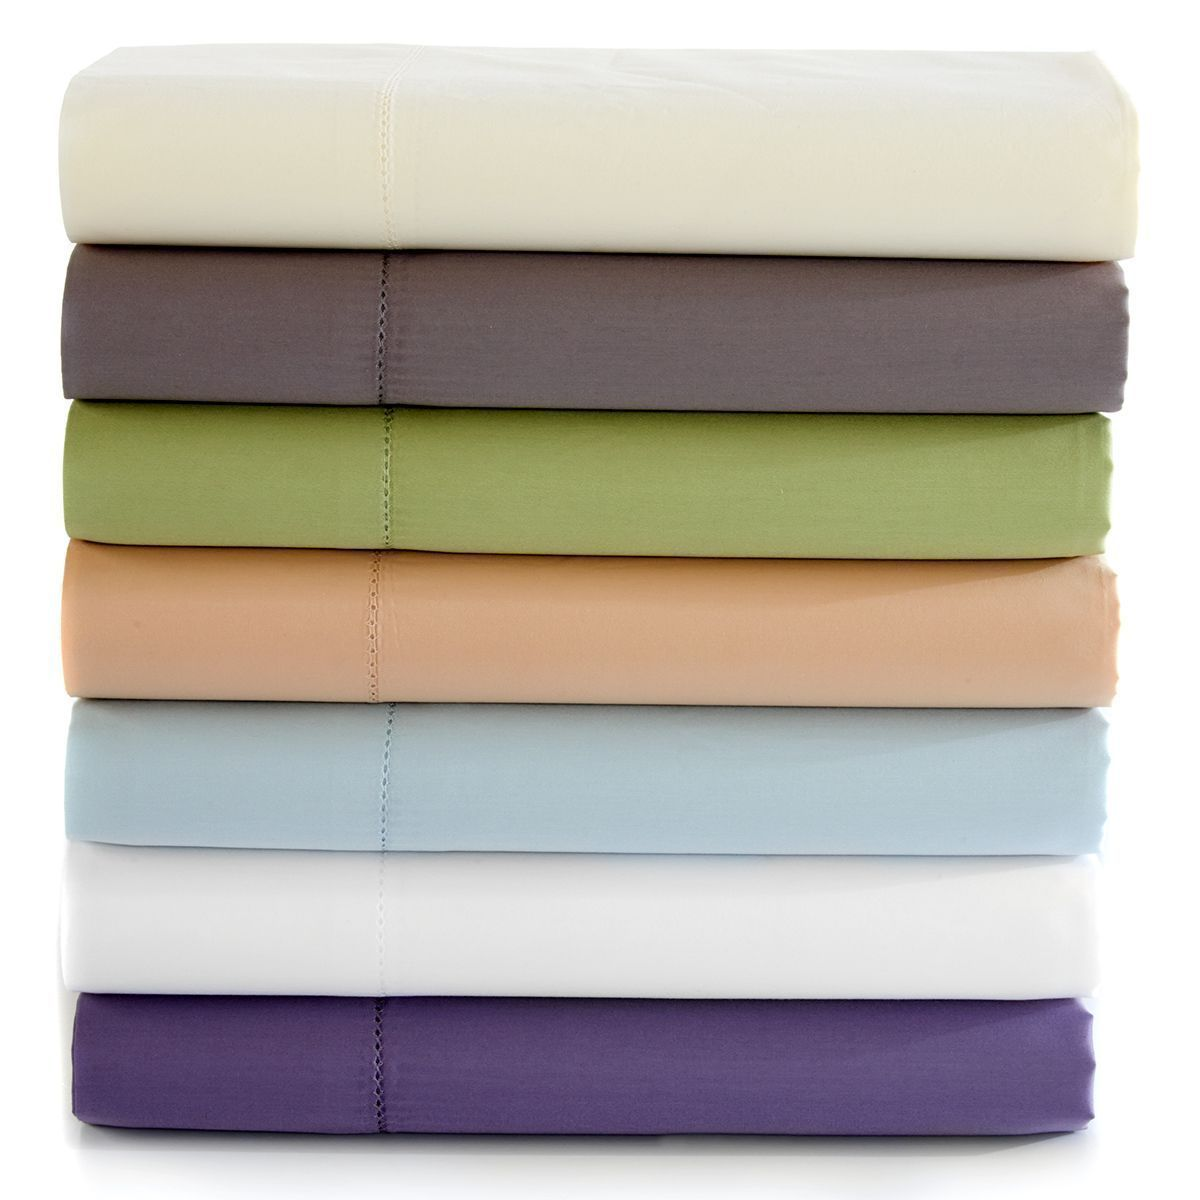 #mens #travel #apparel #shoes #college #shop #business #shopping #maternity #headphones #indiedev #gamedev #win #tips #deals #sale #deal #tip #shopsmall WebDEALS @ Boscov's | Shop Now! 400 Thread Count 100% Cotton Hemstitch Sheet Set http://bit.ly/2FCG2XK